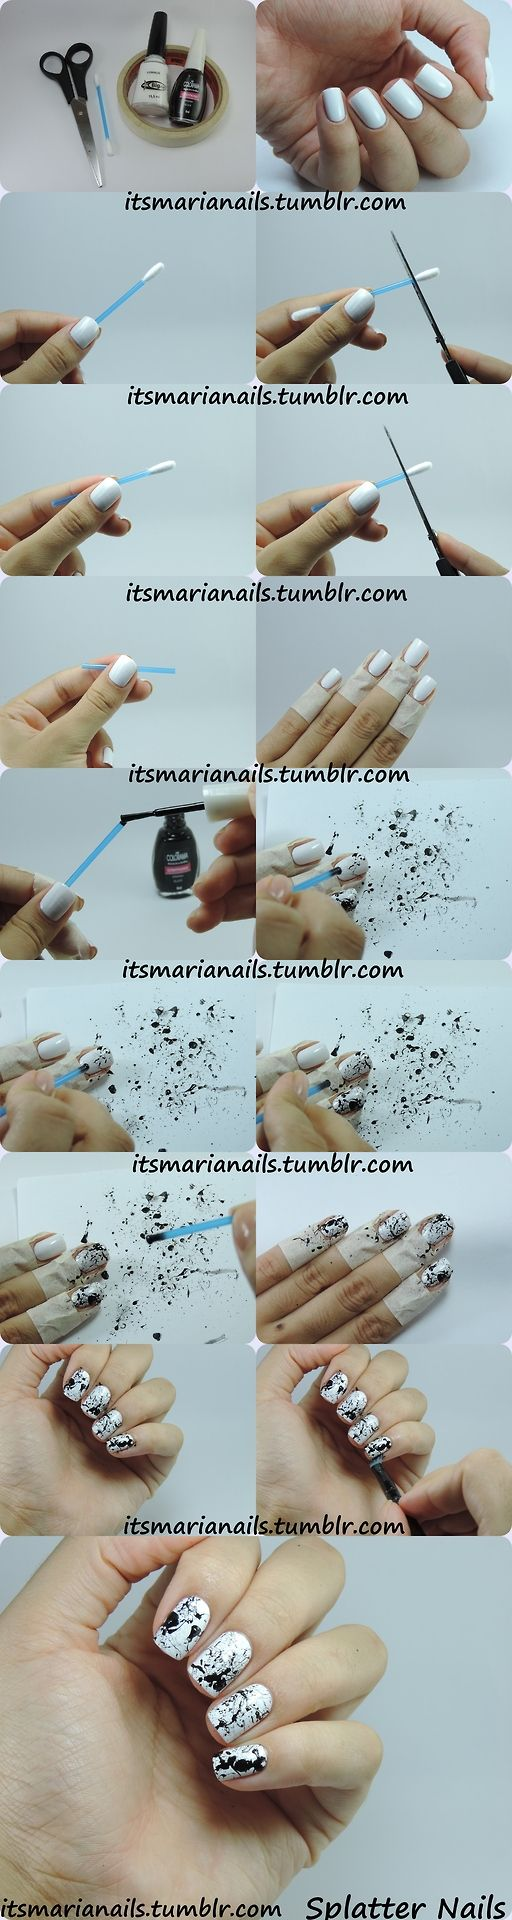 monochrome splatter nails